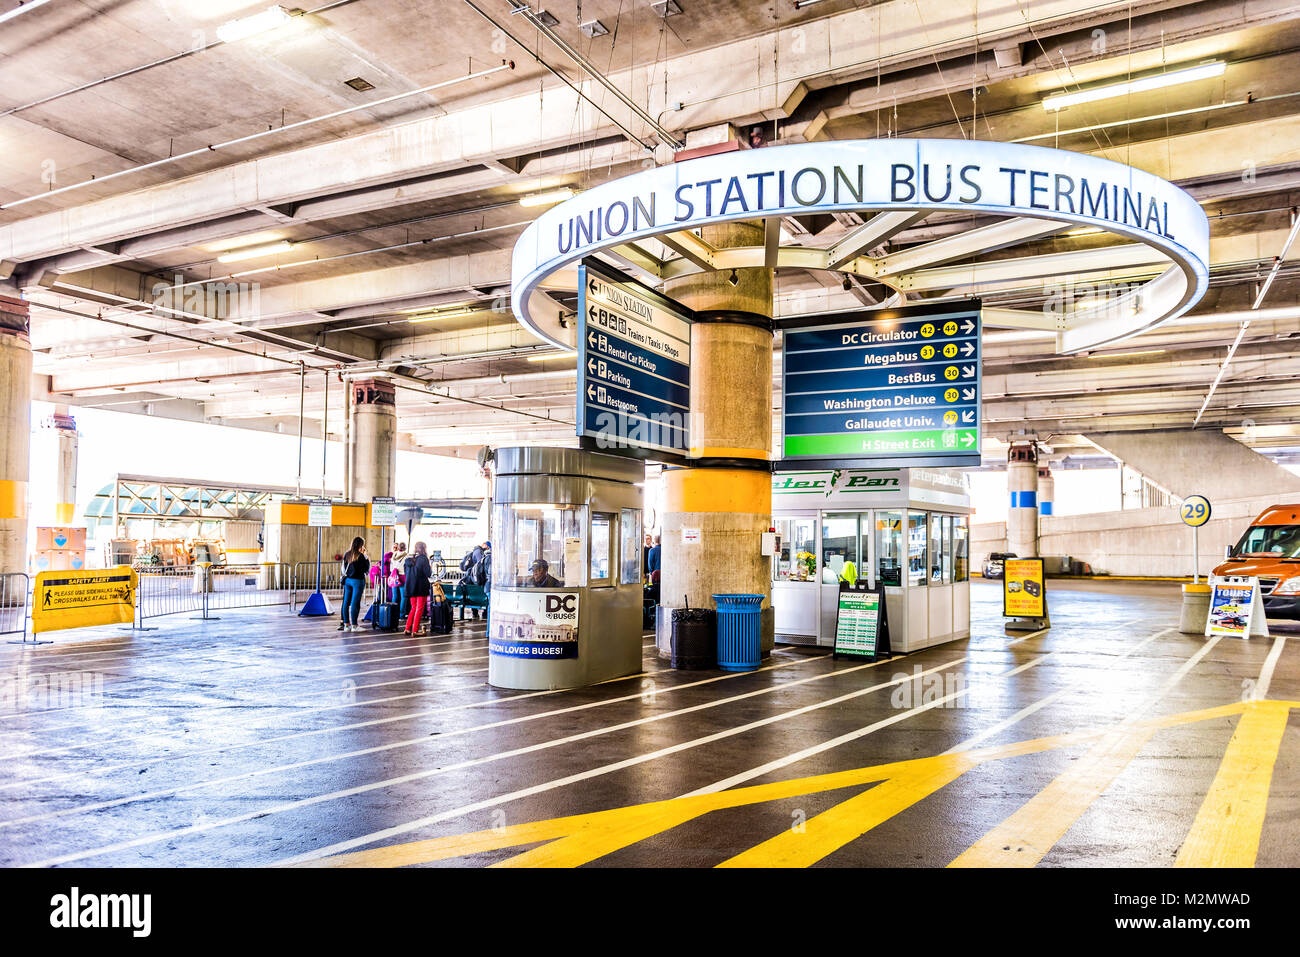 south station boston bus terminal how to buy ticket